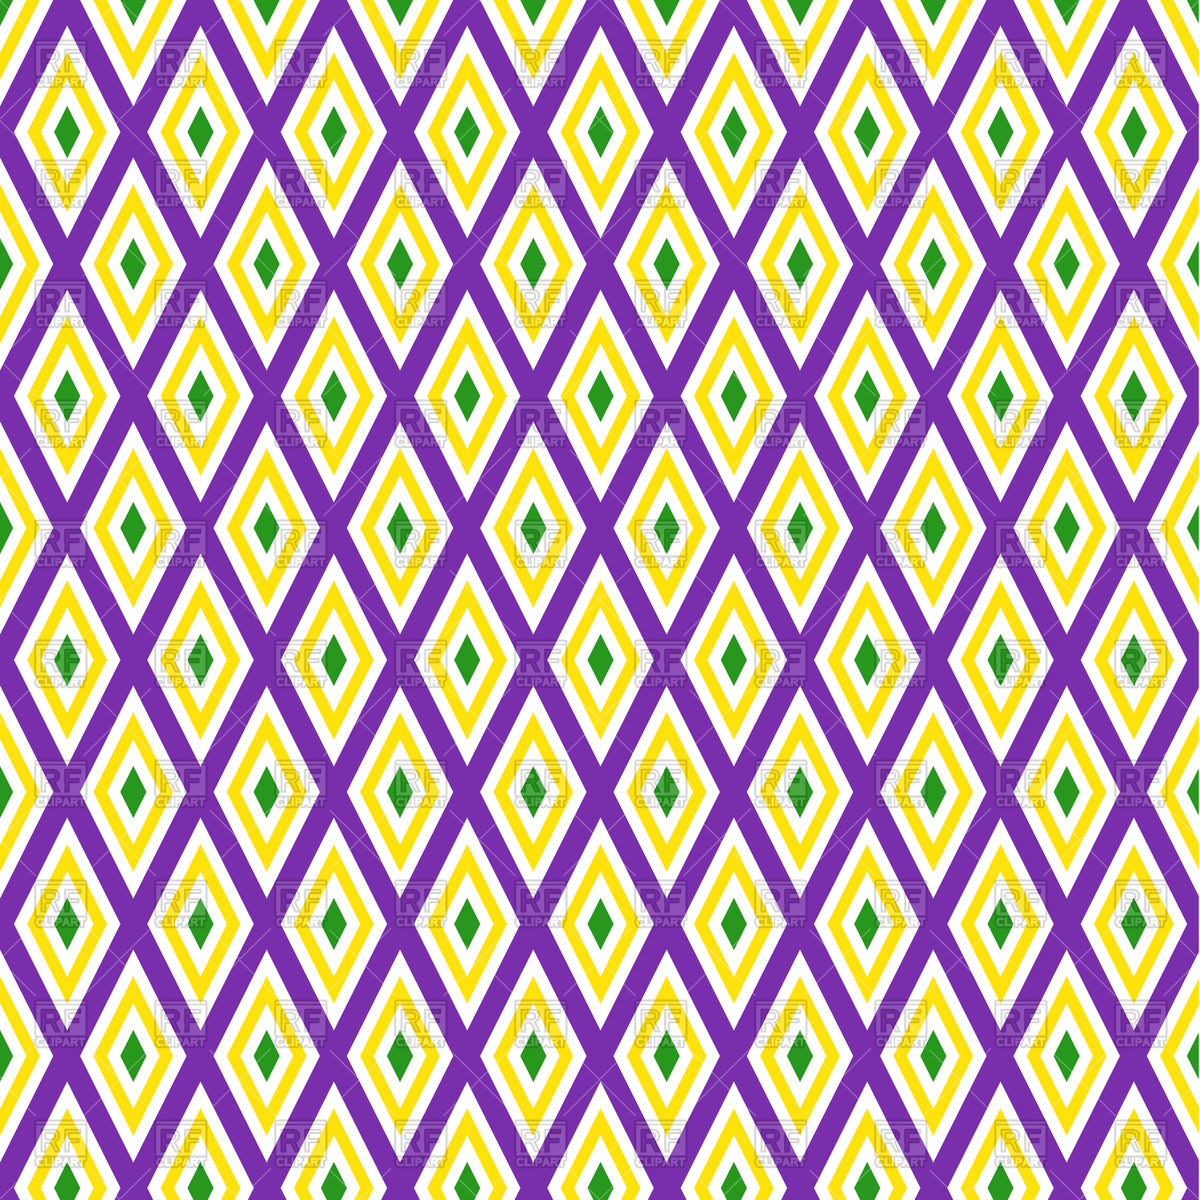 Mardi Gras background Vector Image of Backgrounds Textures 1200x1200